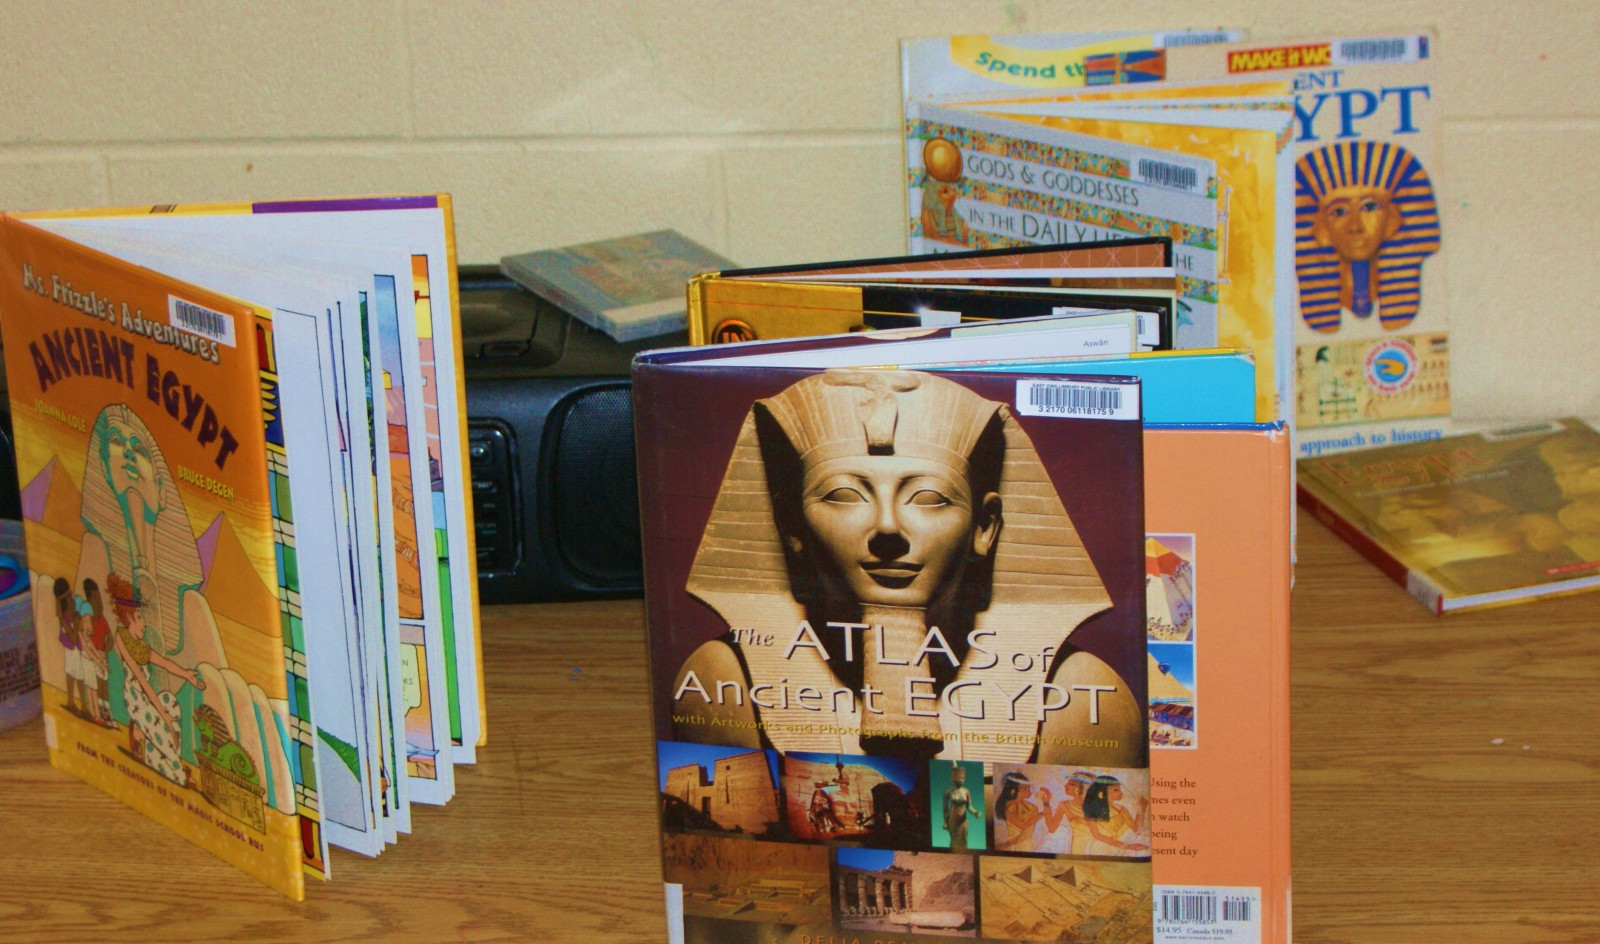 Ancient Egypt at the EG Public Library